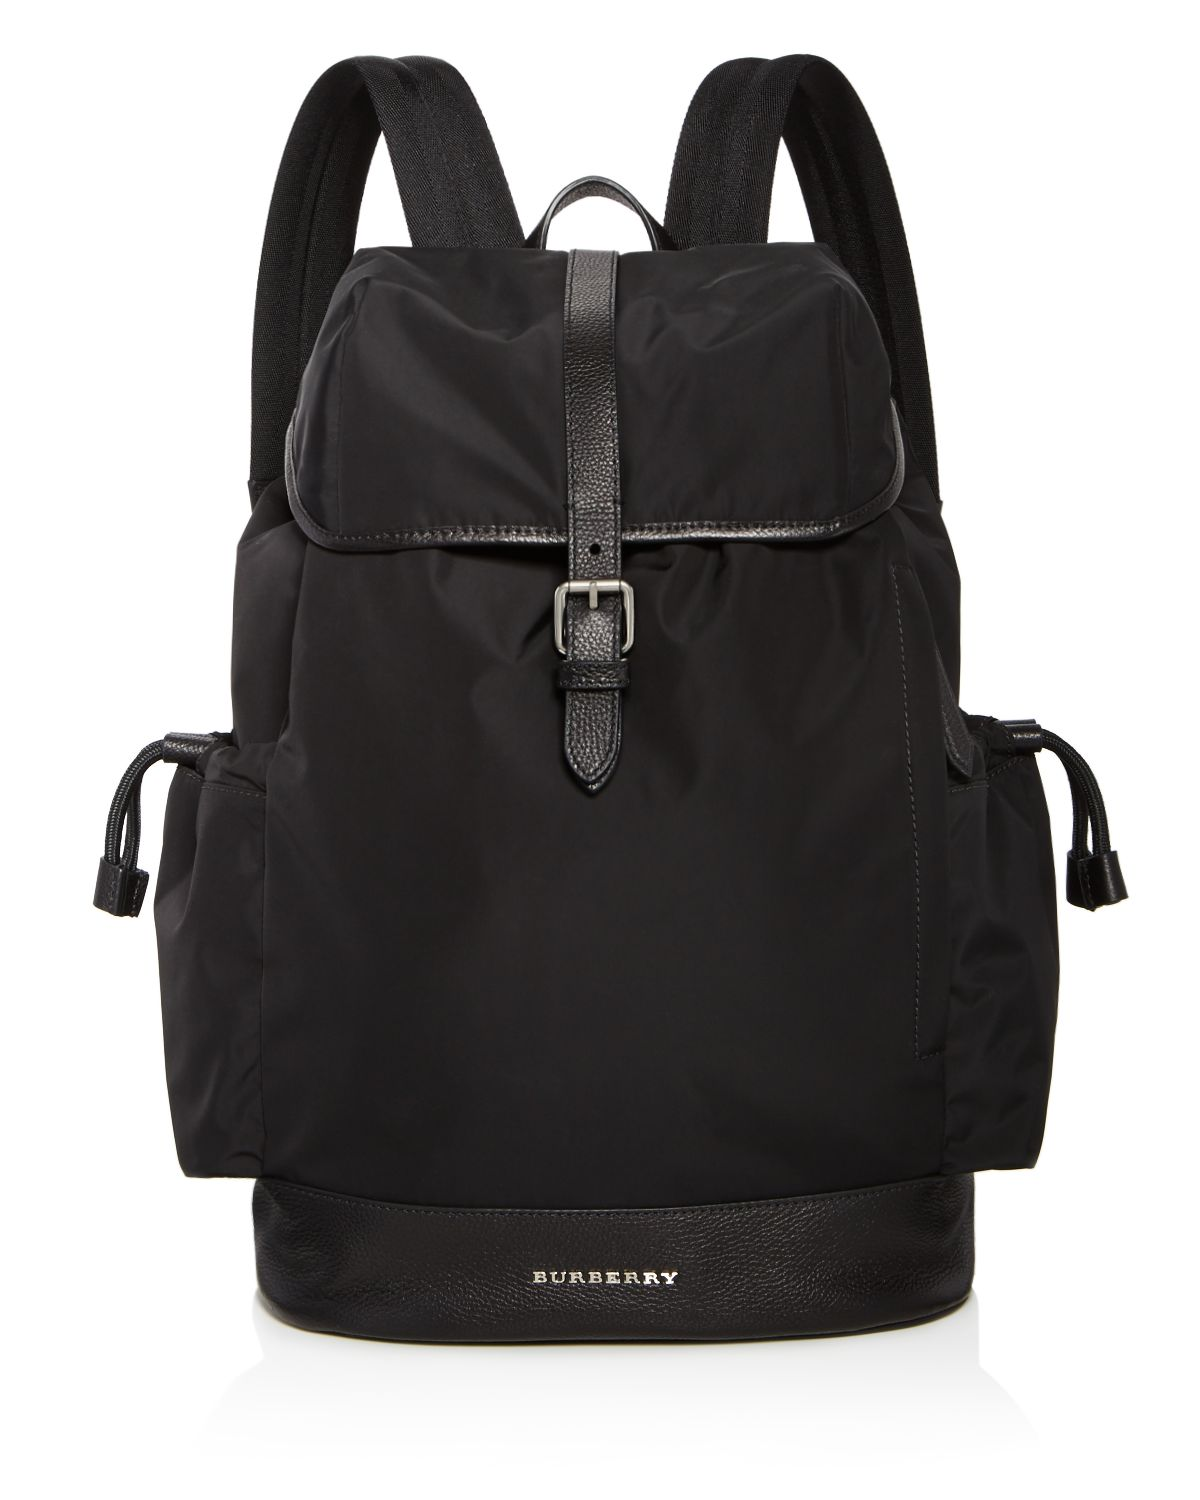 Watson Diaper Backpack by Burberry